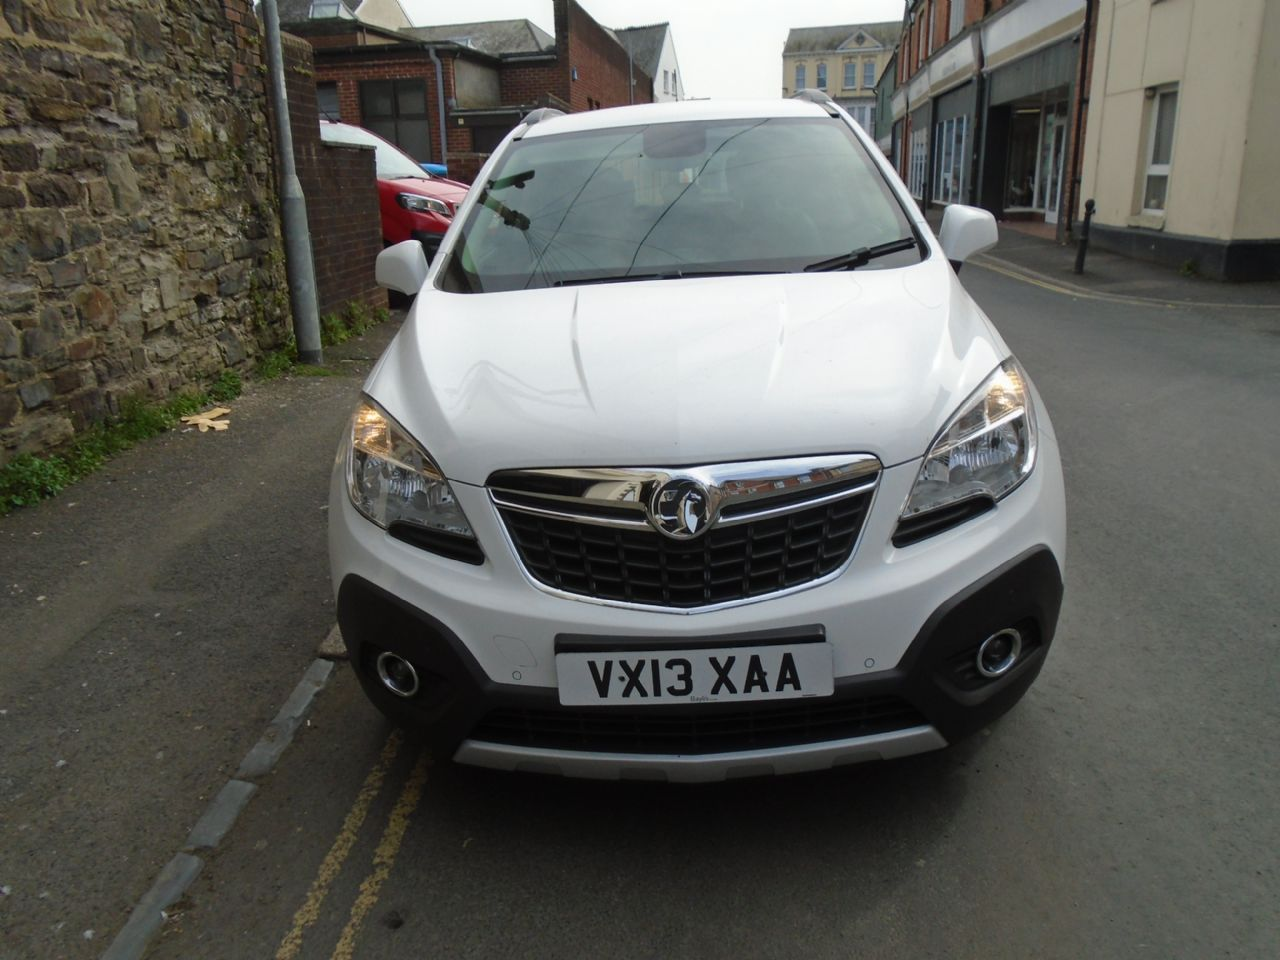 VAUXHALL Mokka Exclusiv 1.6 16v 115PS S/S 5-spd - Picture 5